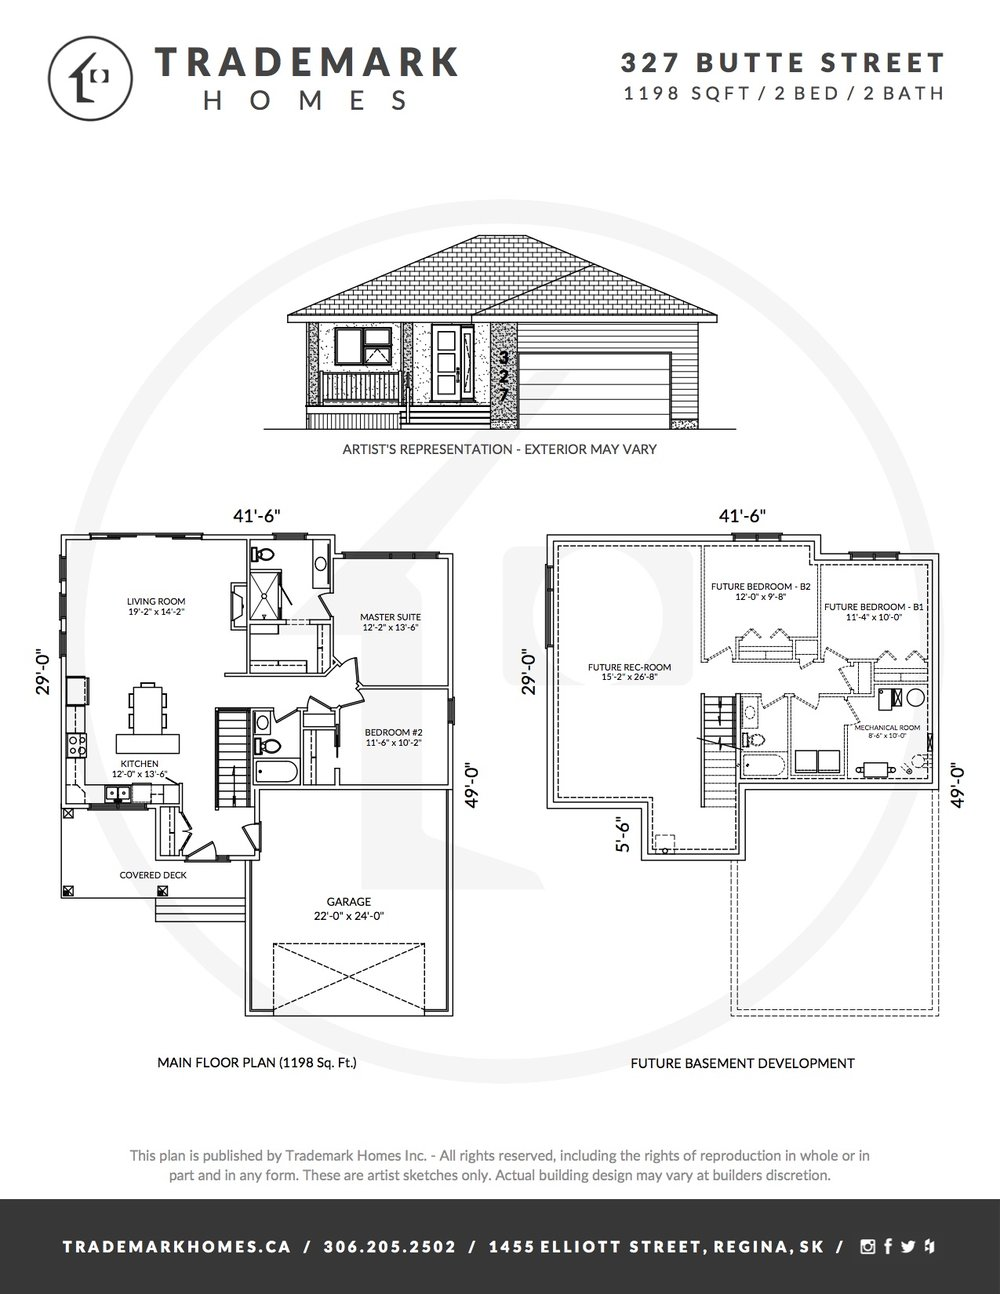 Trademark Homes 327 Butte Street Pilot Butte Floor Plan